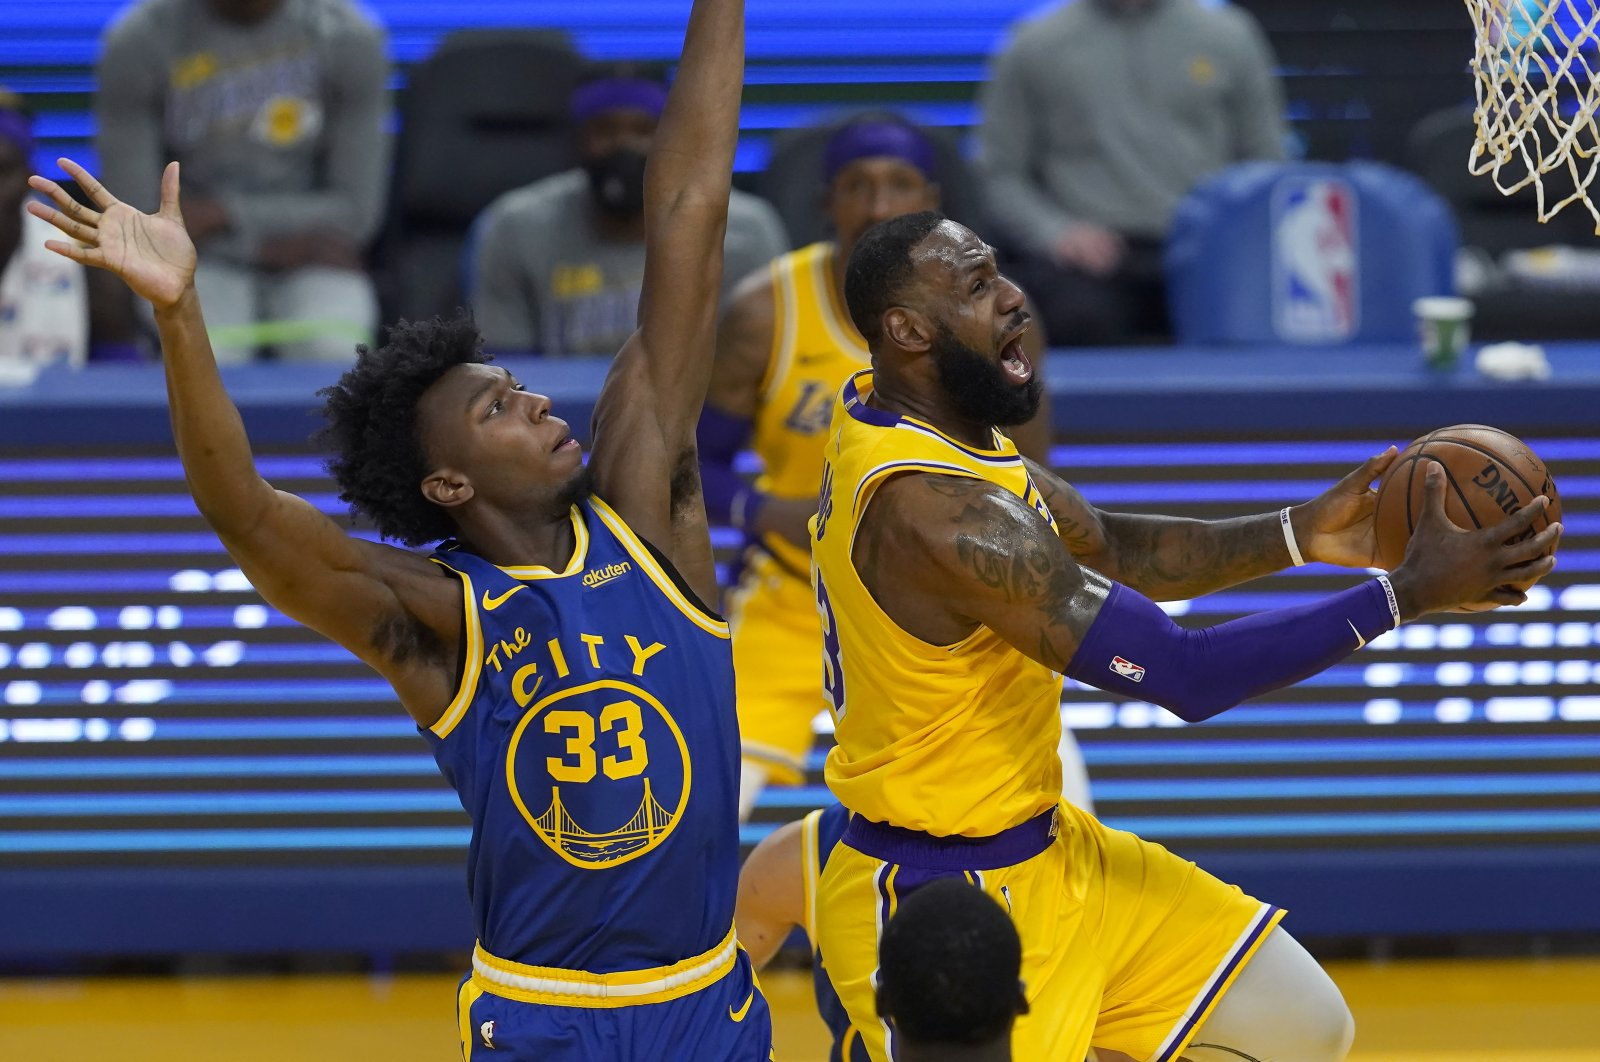 Los Angeles Lakers forward LeBron James (R) shoots against Golden State Warriors center James Wiseman during an NBA game, San Francisco, March 15, 2021. (AP Photo)